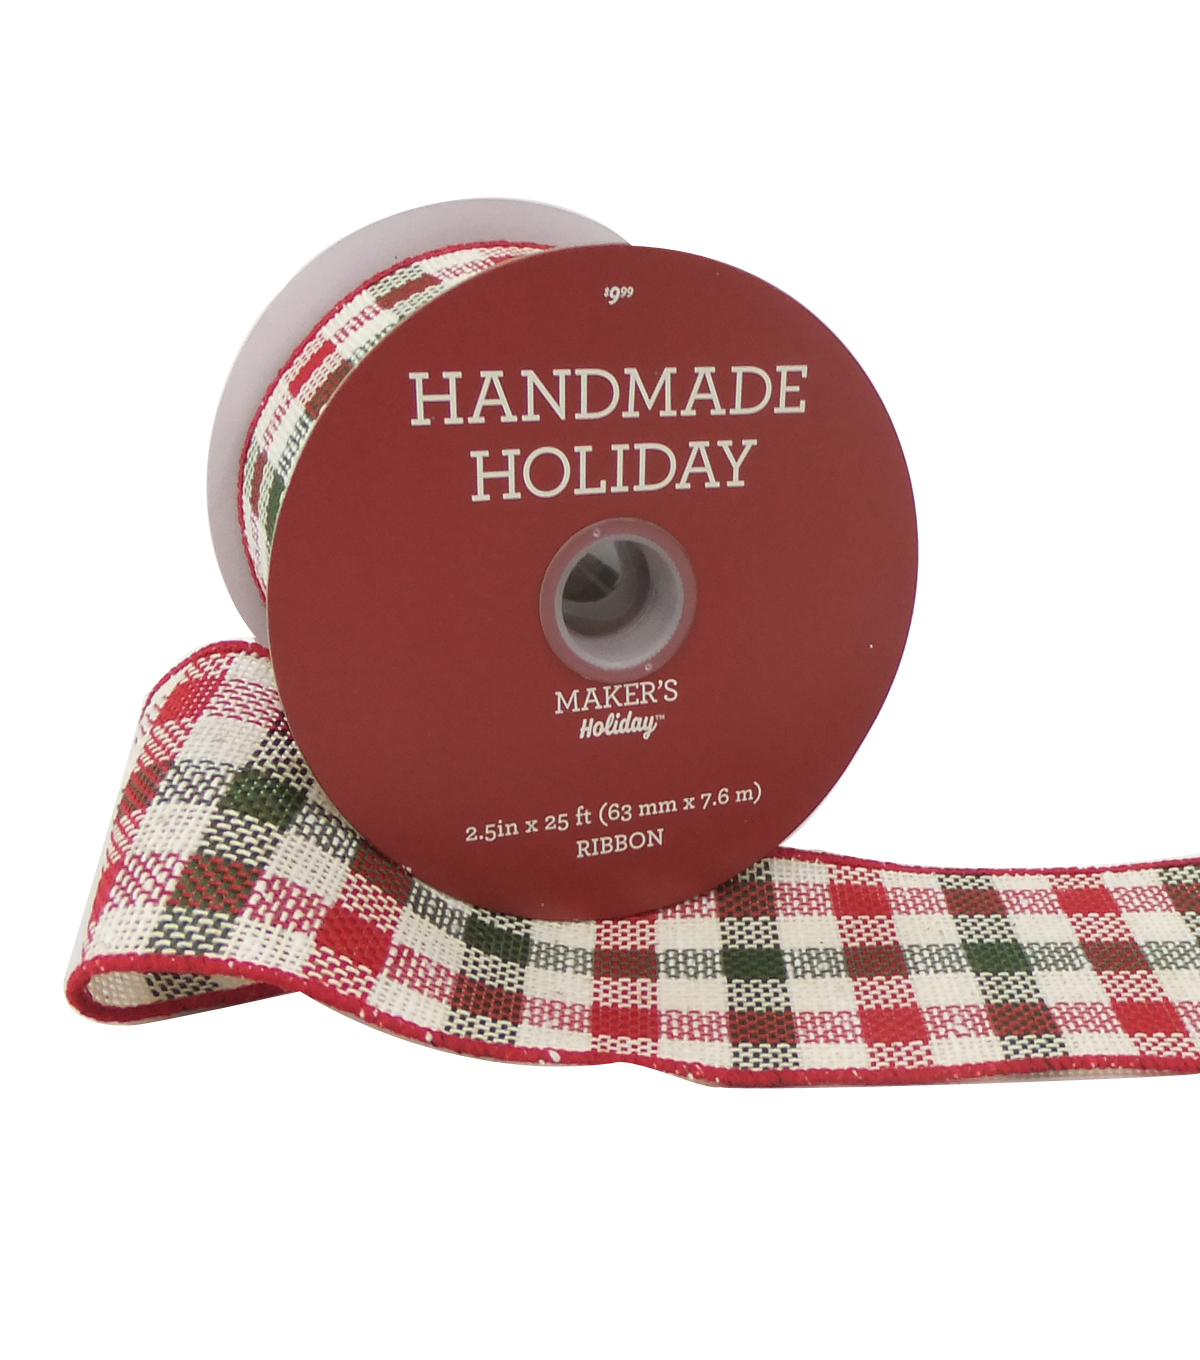 Maker's Holiday Handmade Holiday Ribbon 2.5''x25'-Red/Green, Beige Plaid